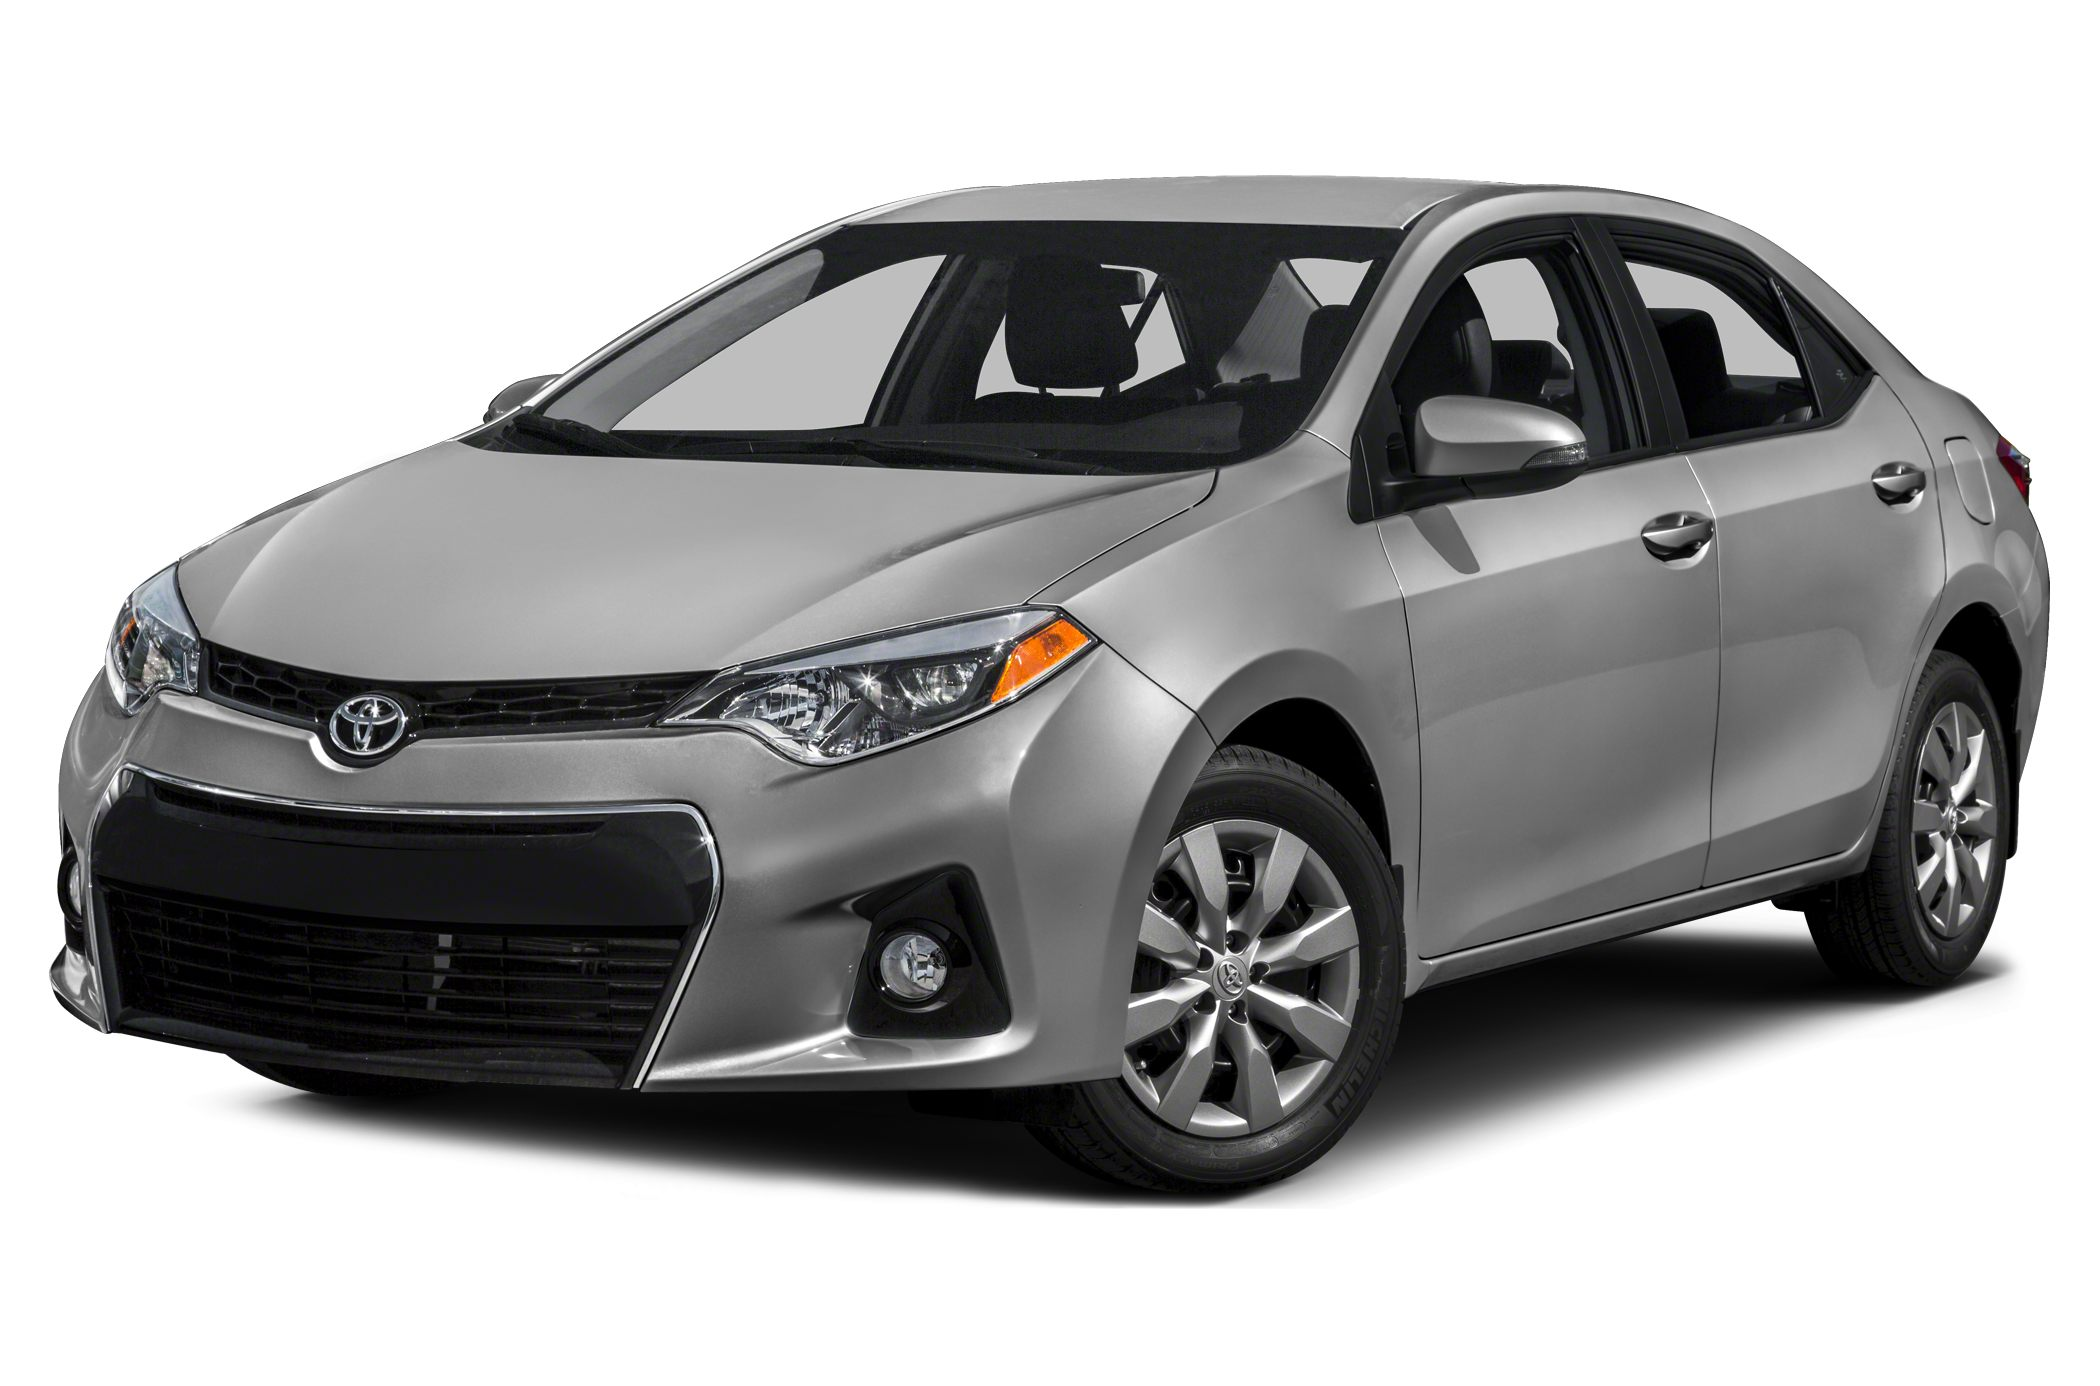 2015 Toyota Corolla S Plus Sedan for sale in Bronx for $21,745 with 1 miles.